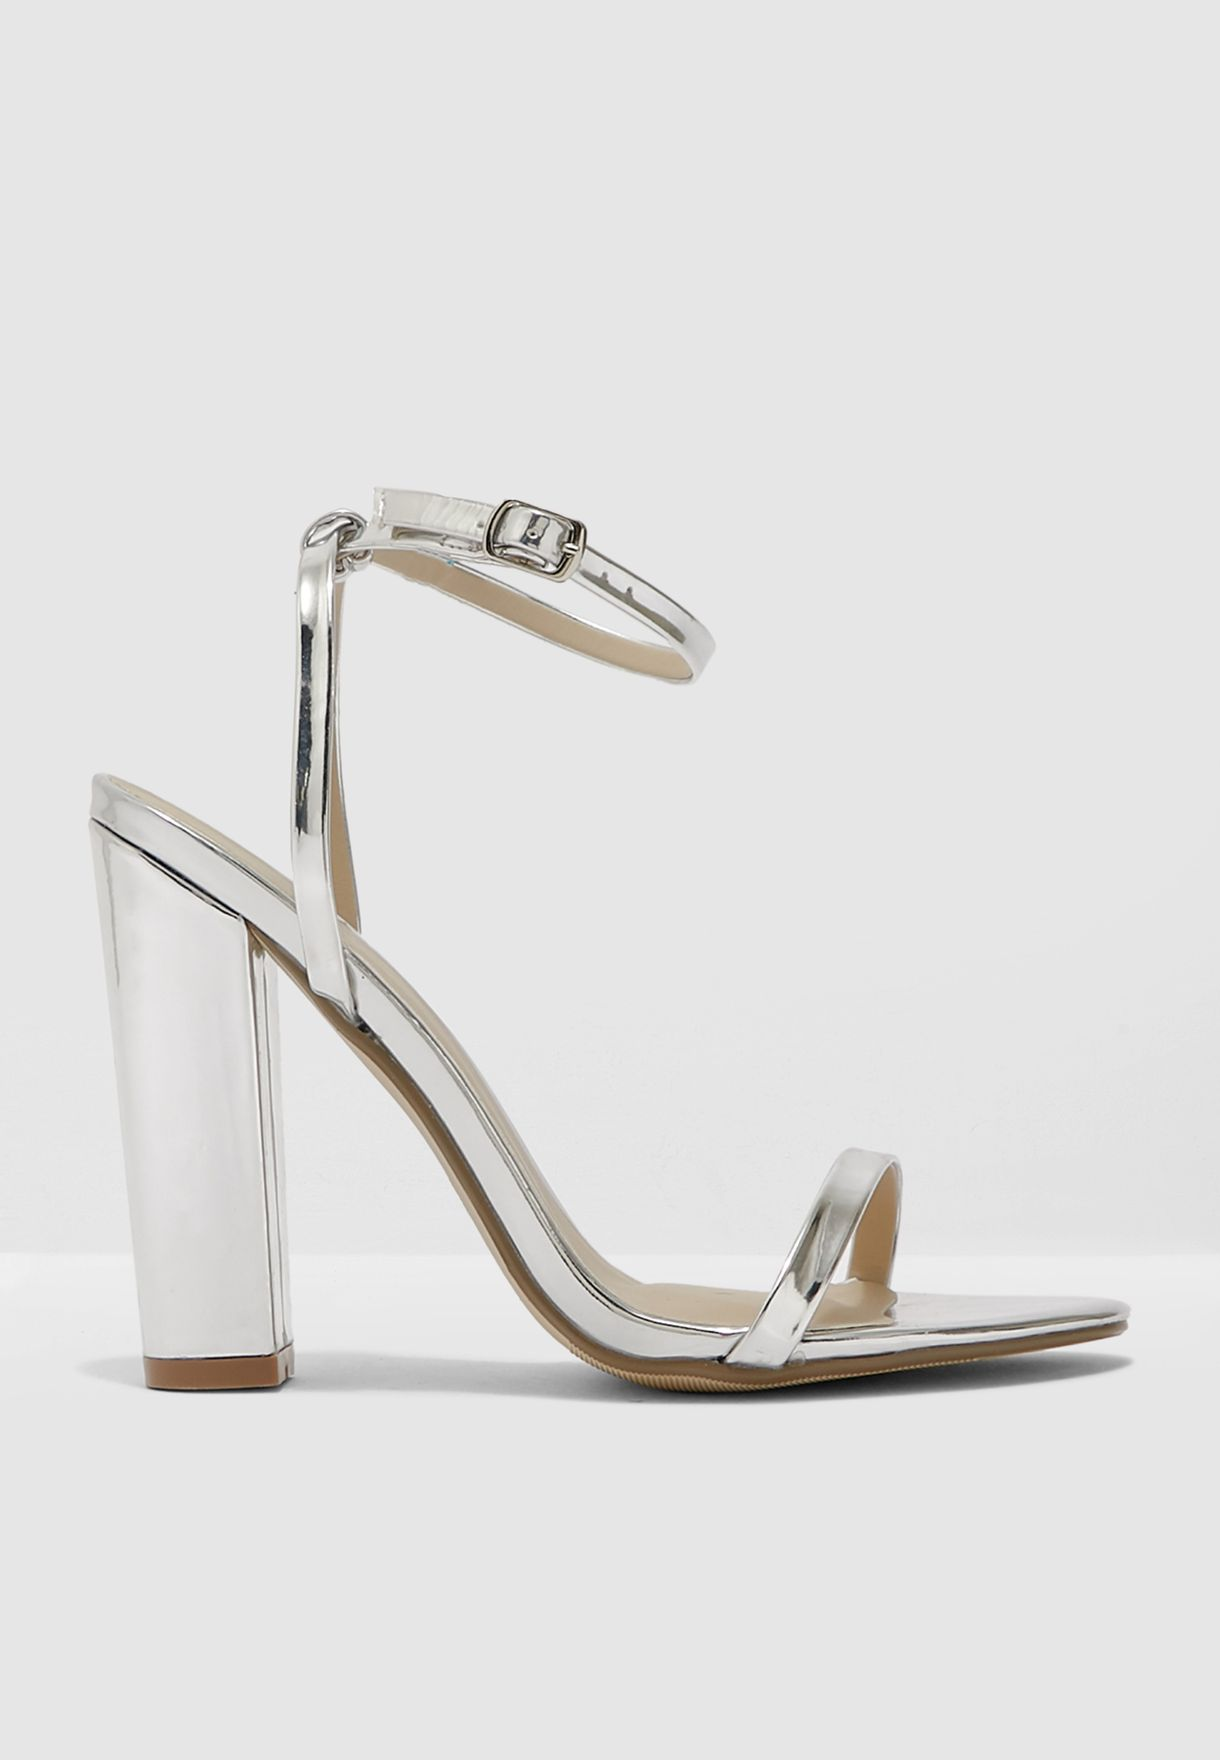 Entry Block Heeled Sandal